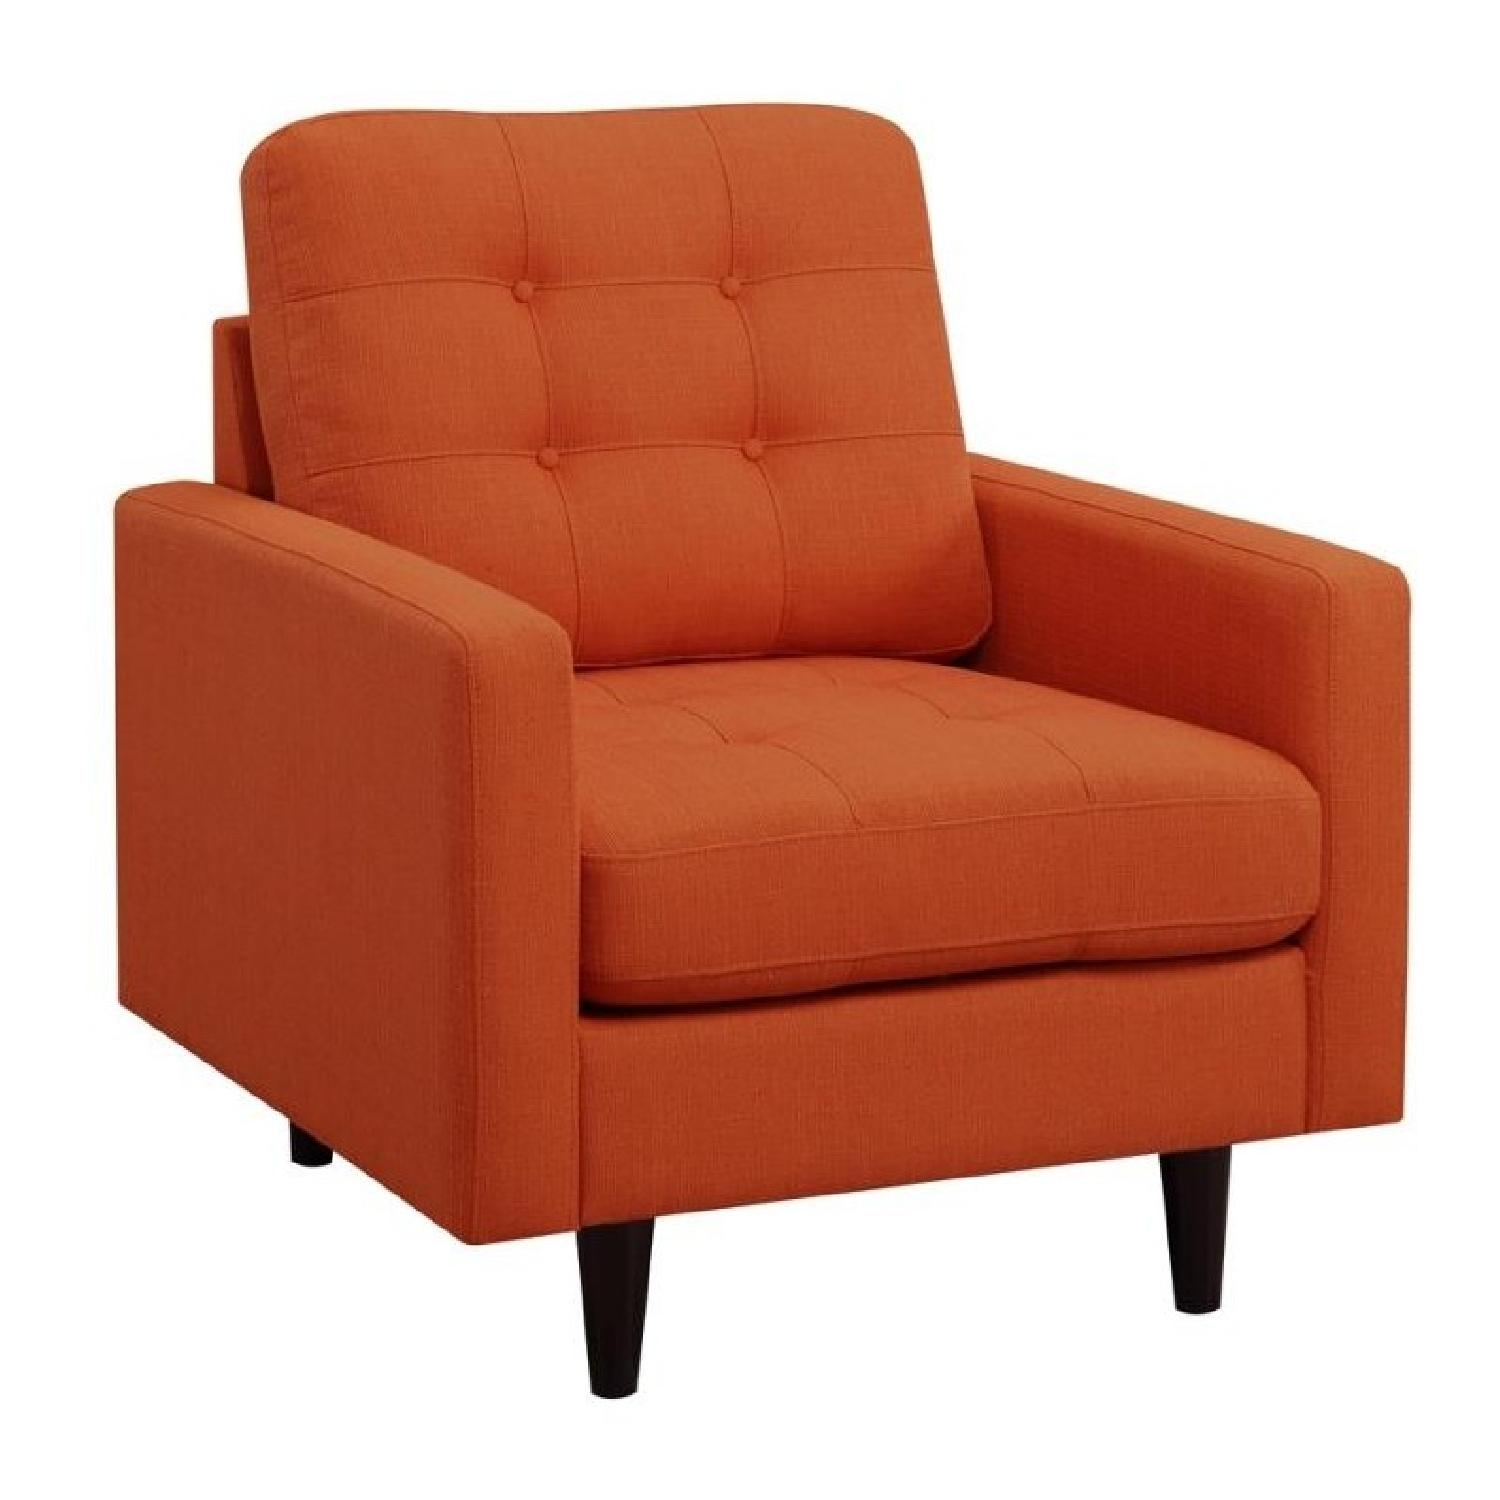 Mid-Century Modern Style Chair w/ Reversible Seat & Back Cushion in Orange Fabric